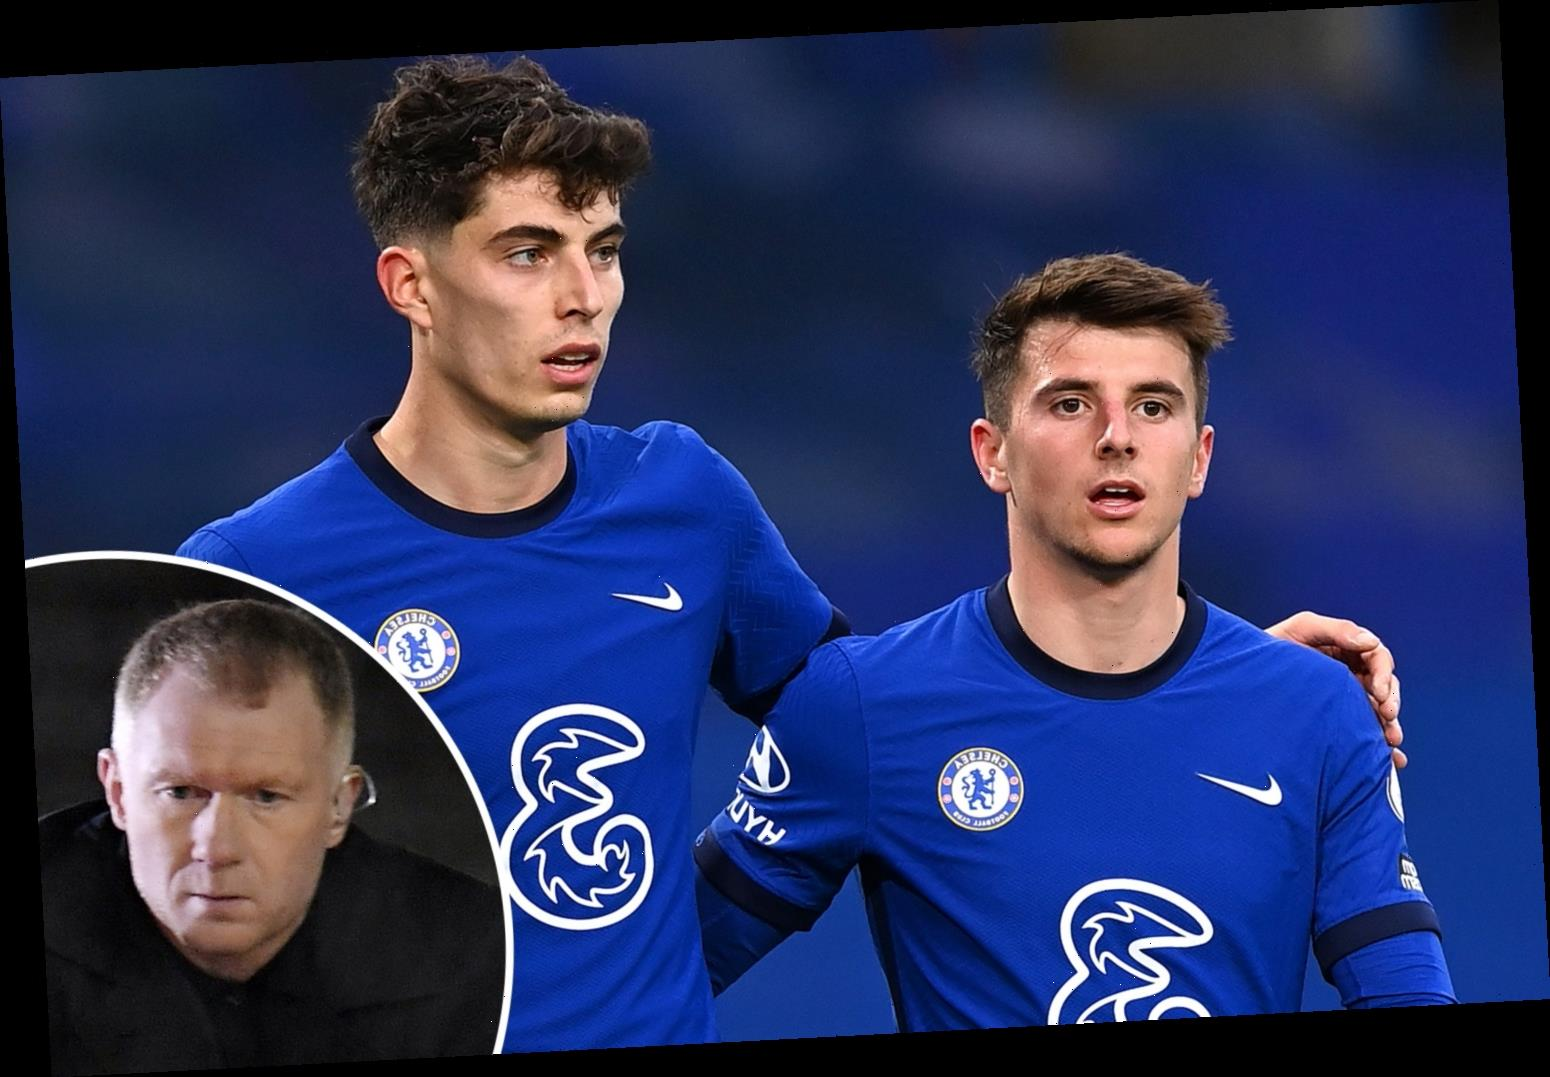 Chelsea 'not quite ready' to win Premier League but young talents will become 'fantastic', claims Paul Scholes